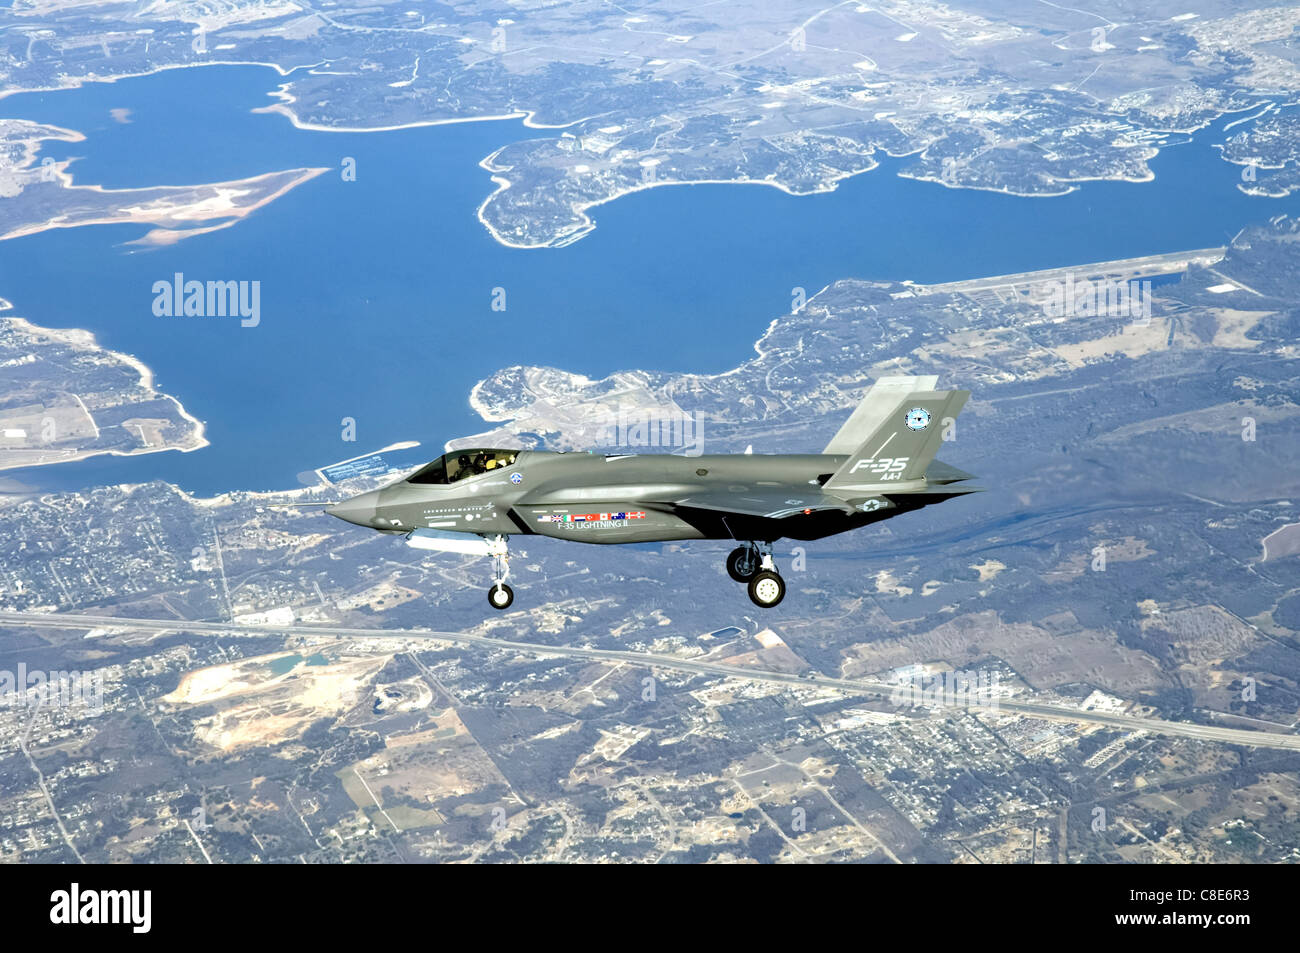 The F-35 Lightning II Joint Strike Fighter makes its initial flight Dec. 15 over Fort Worth, Texas. - Stock Image